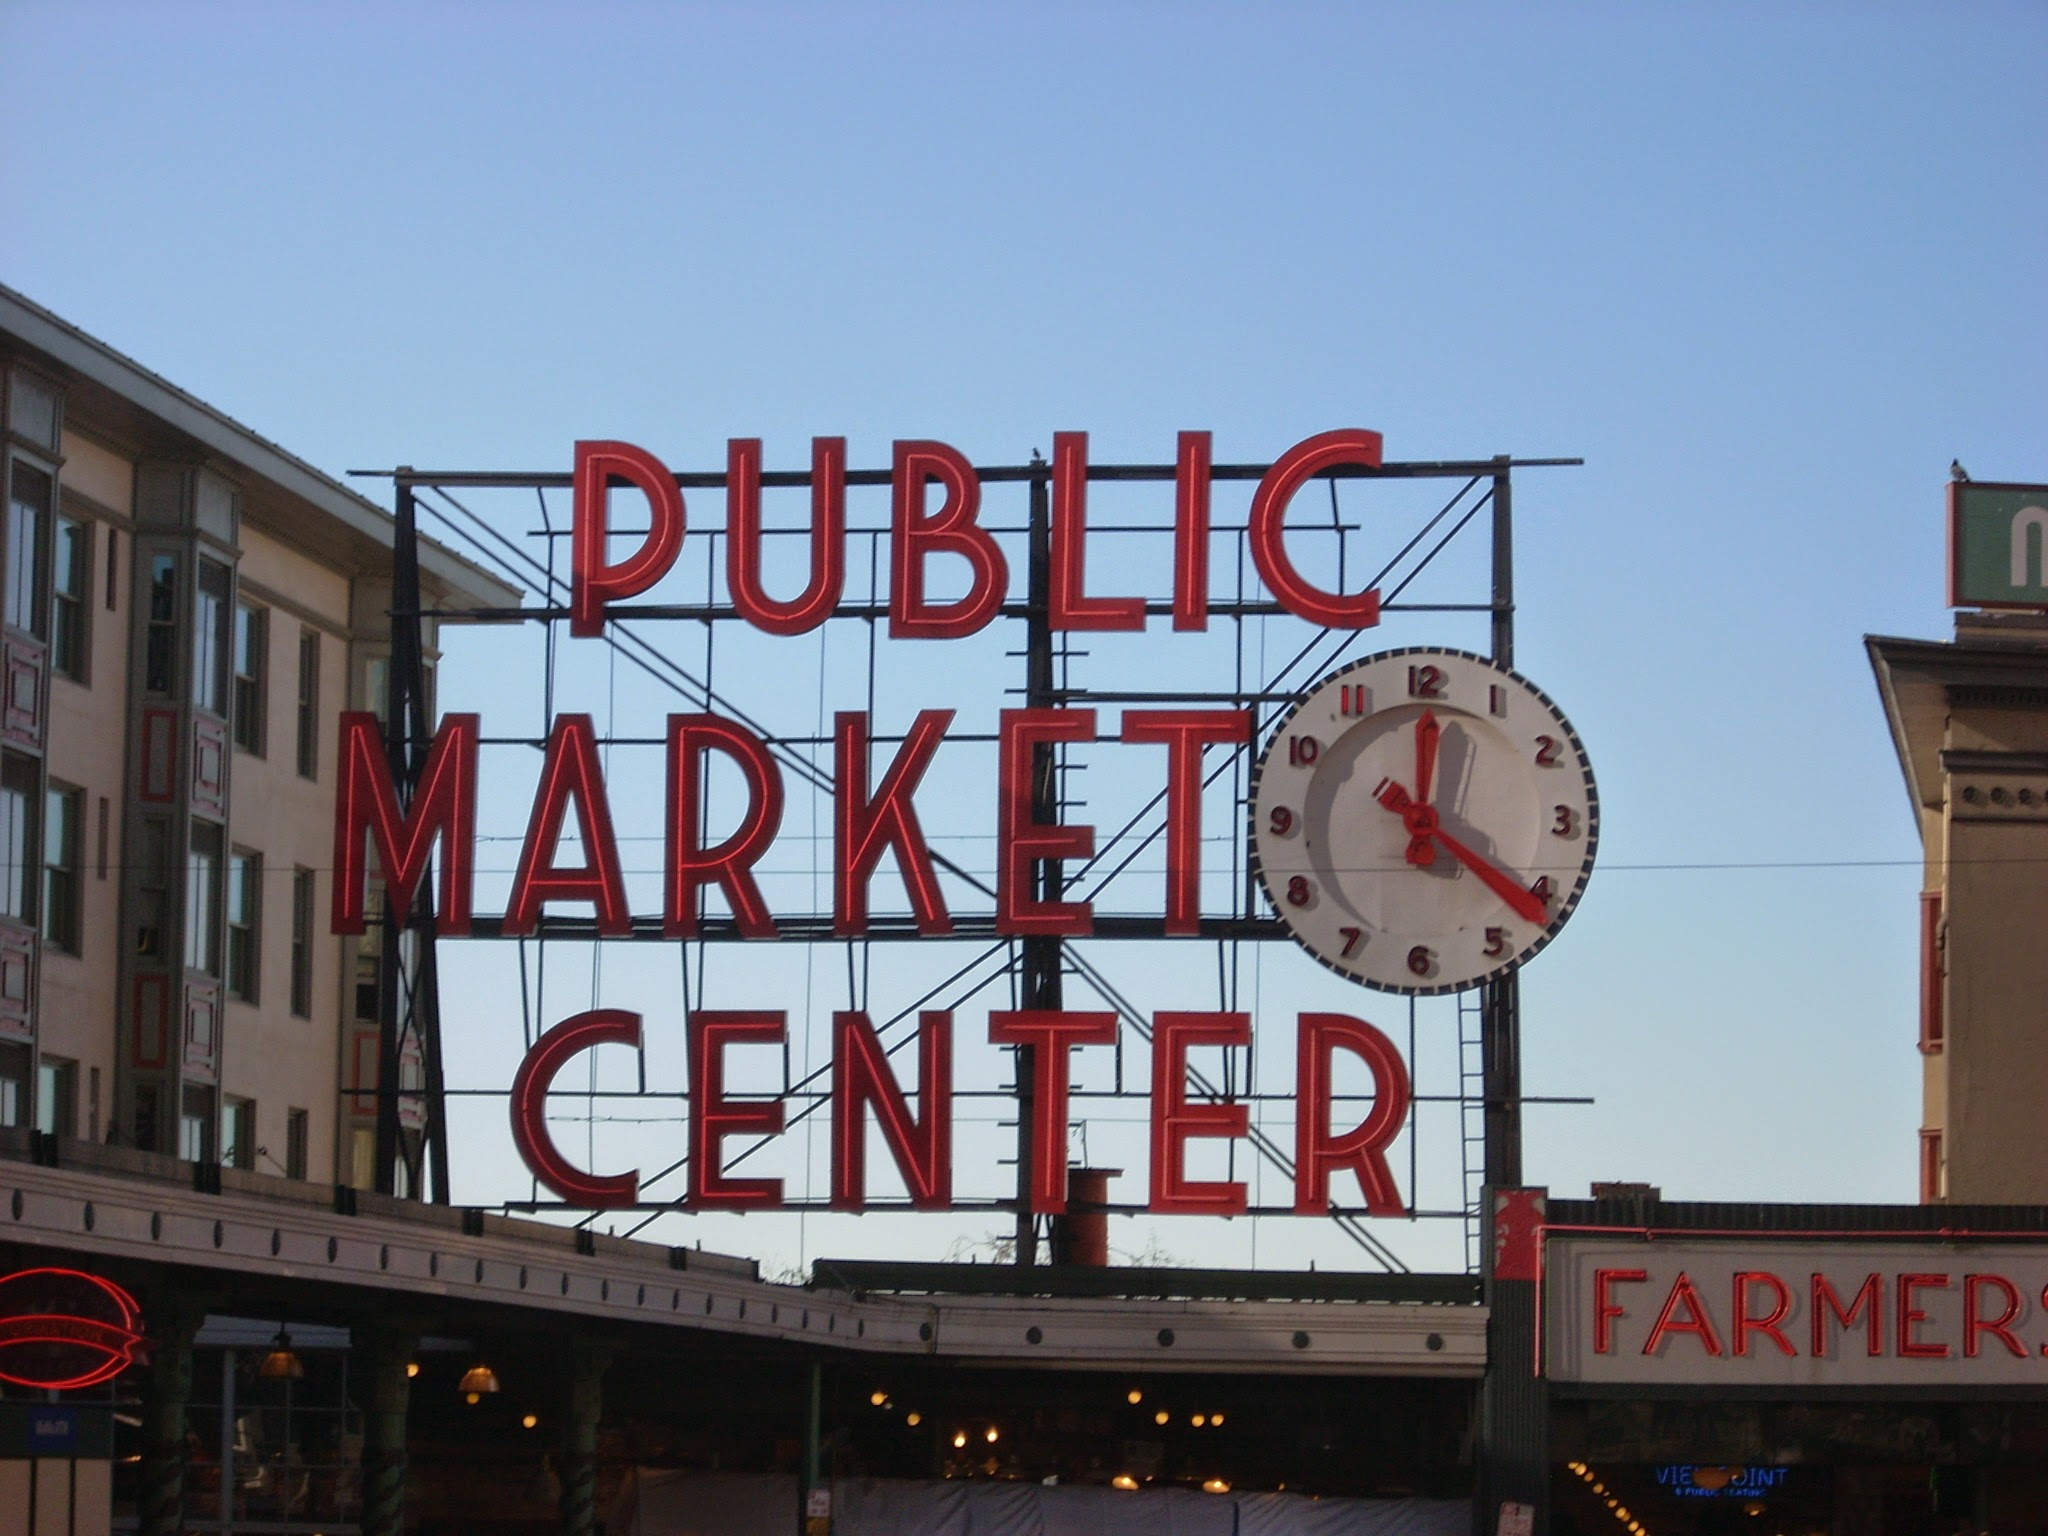 The Public Market Center sign in Seattle. The sign has large red letters and a red and white clock.